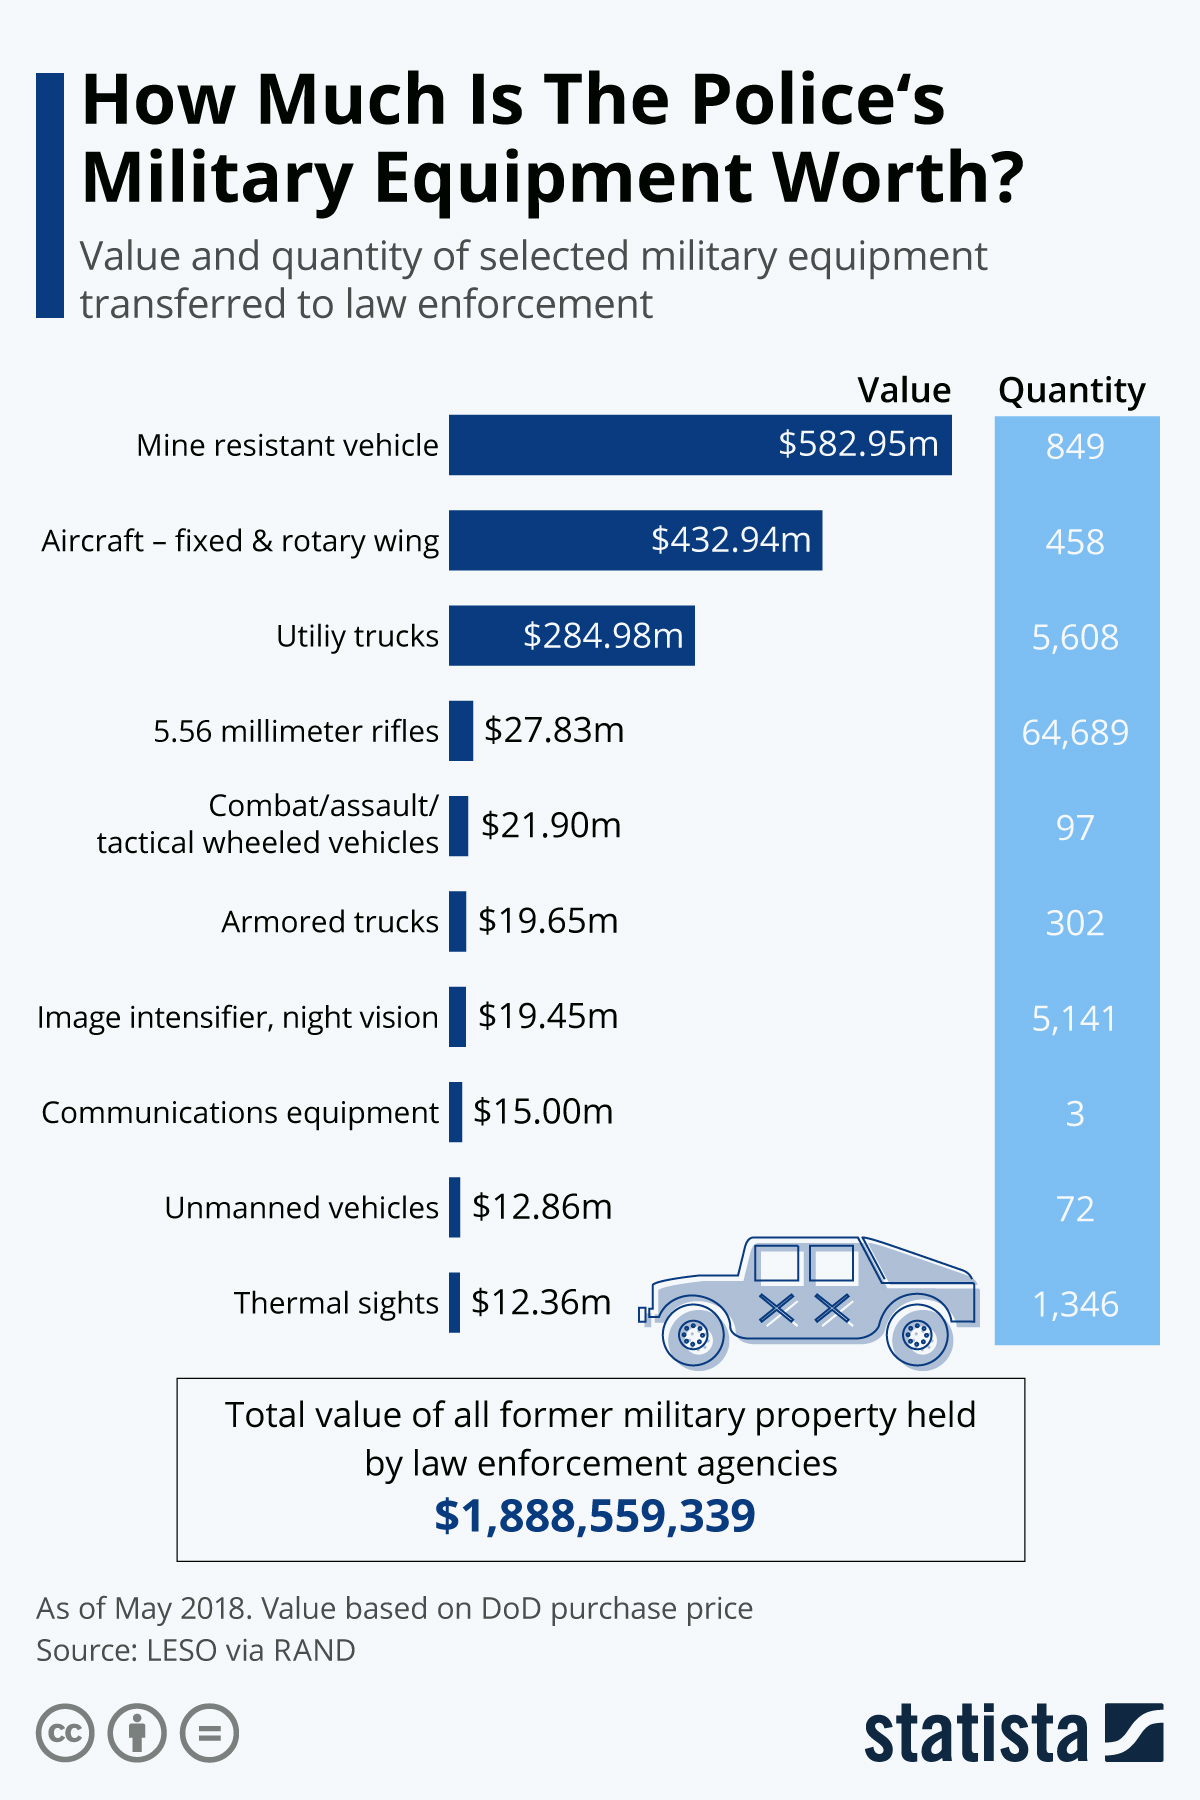 How Much Is The Police's Military Equipment Worth? #infographic